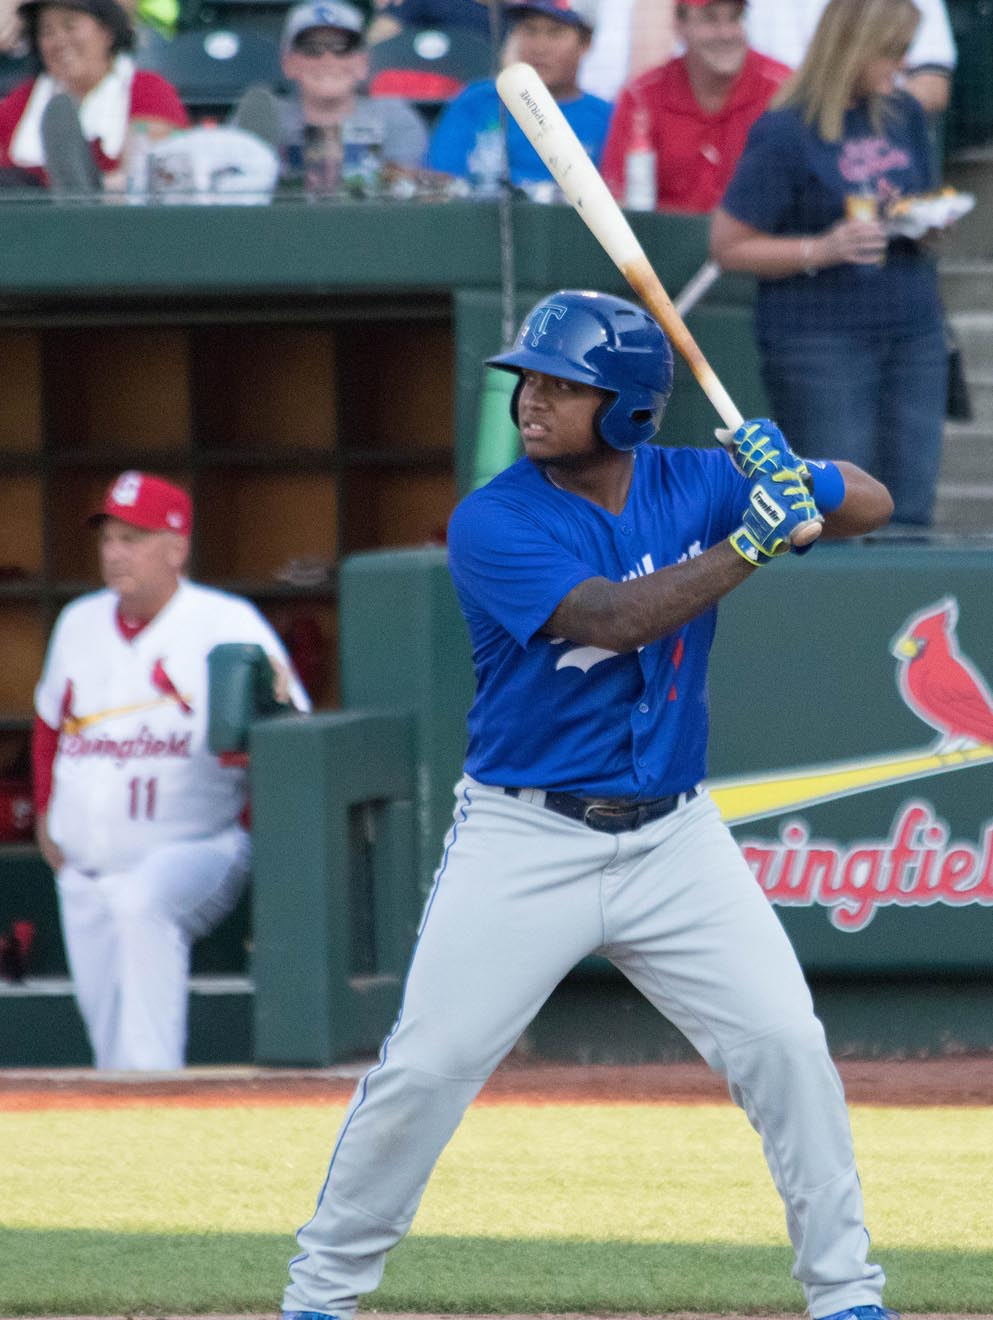 September 12, 2019 -- The Rangers are predicted to beat the Rays at home. The Rangers top hitter is Danny Santana and projected starting pitcher is Kolby Allard.